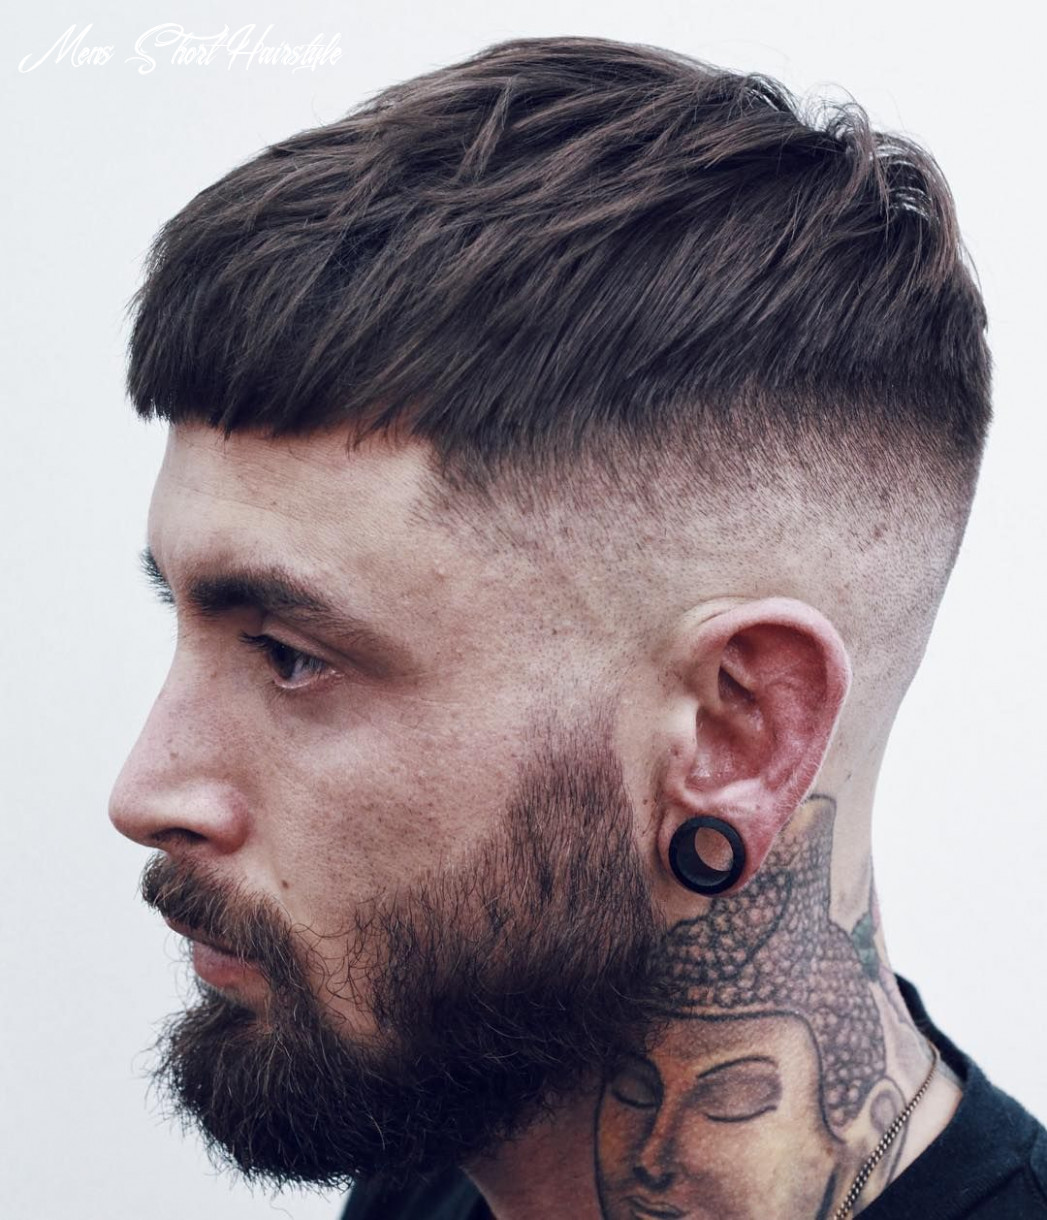 12 cool short haircuts hairstyles for men (12 update